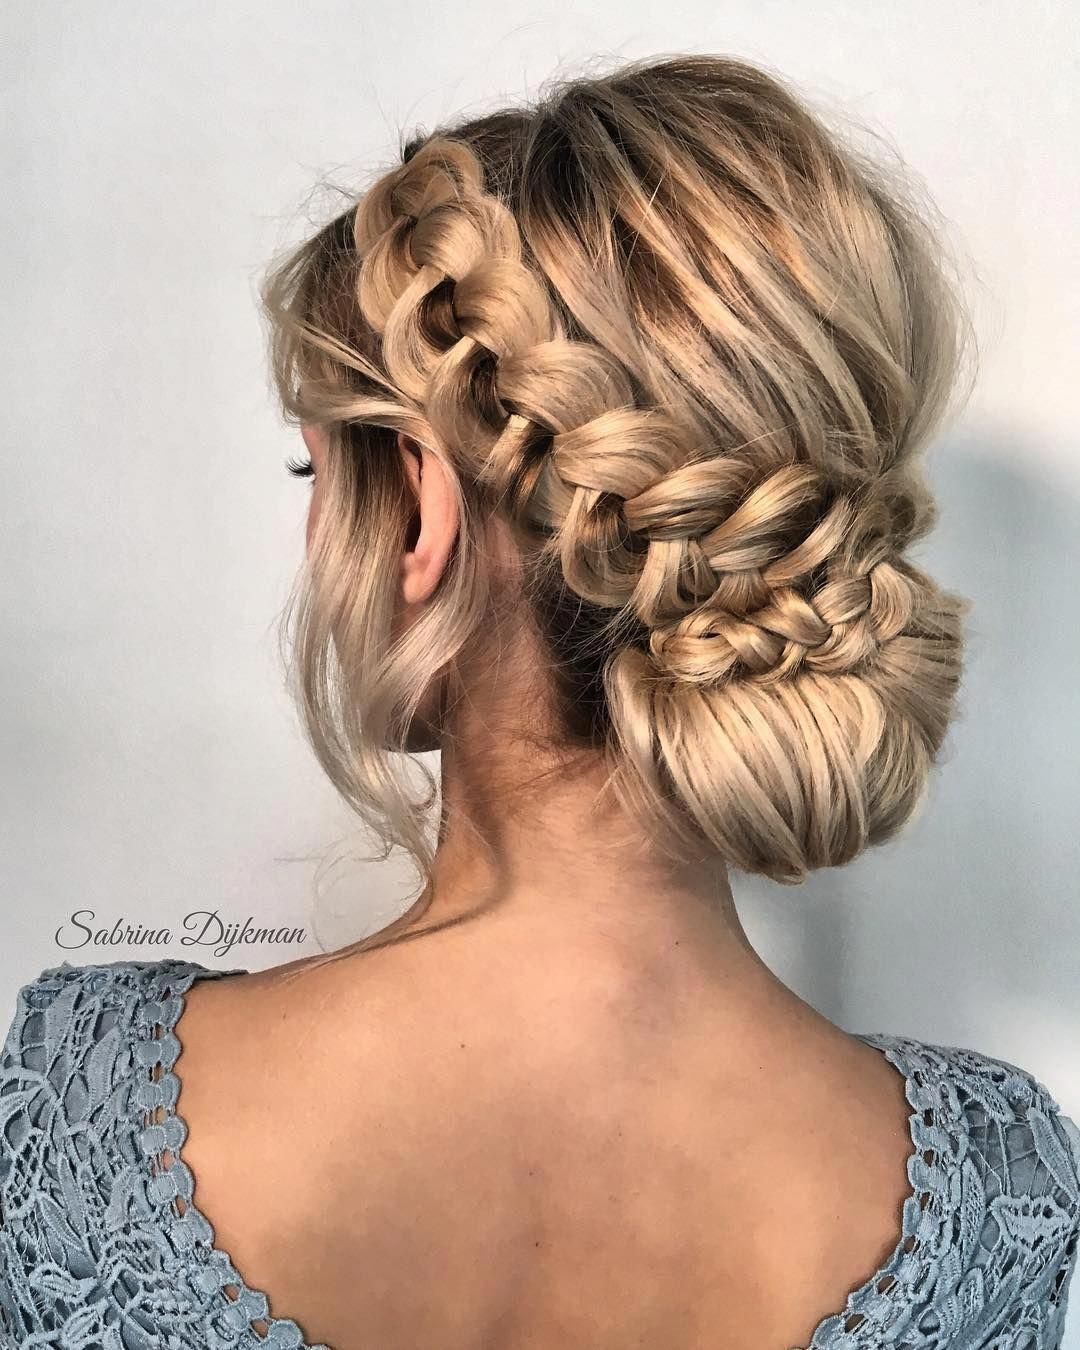 Beautiful Wedding Braided Updo Hairstyle Messy Updo Wedding Hairstyles Chignon Messy Upd Braided Hairstyles Updo Braids For Long Hair Cool Braid Hairstyles